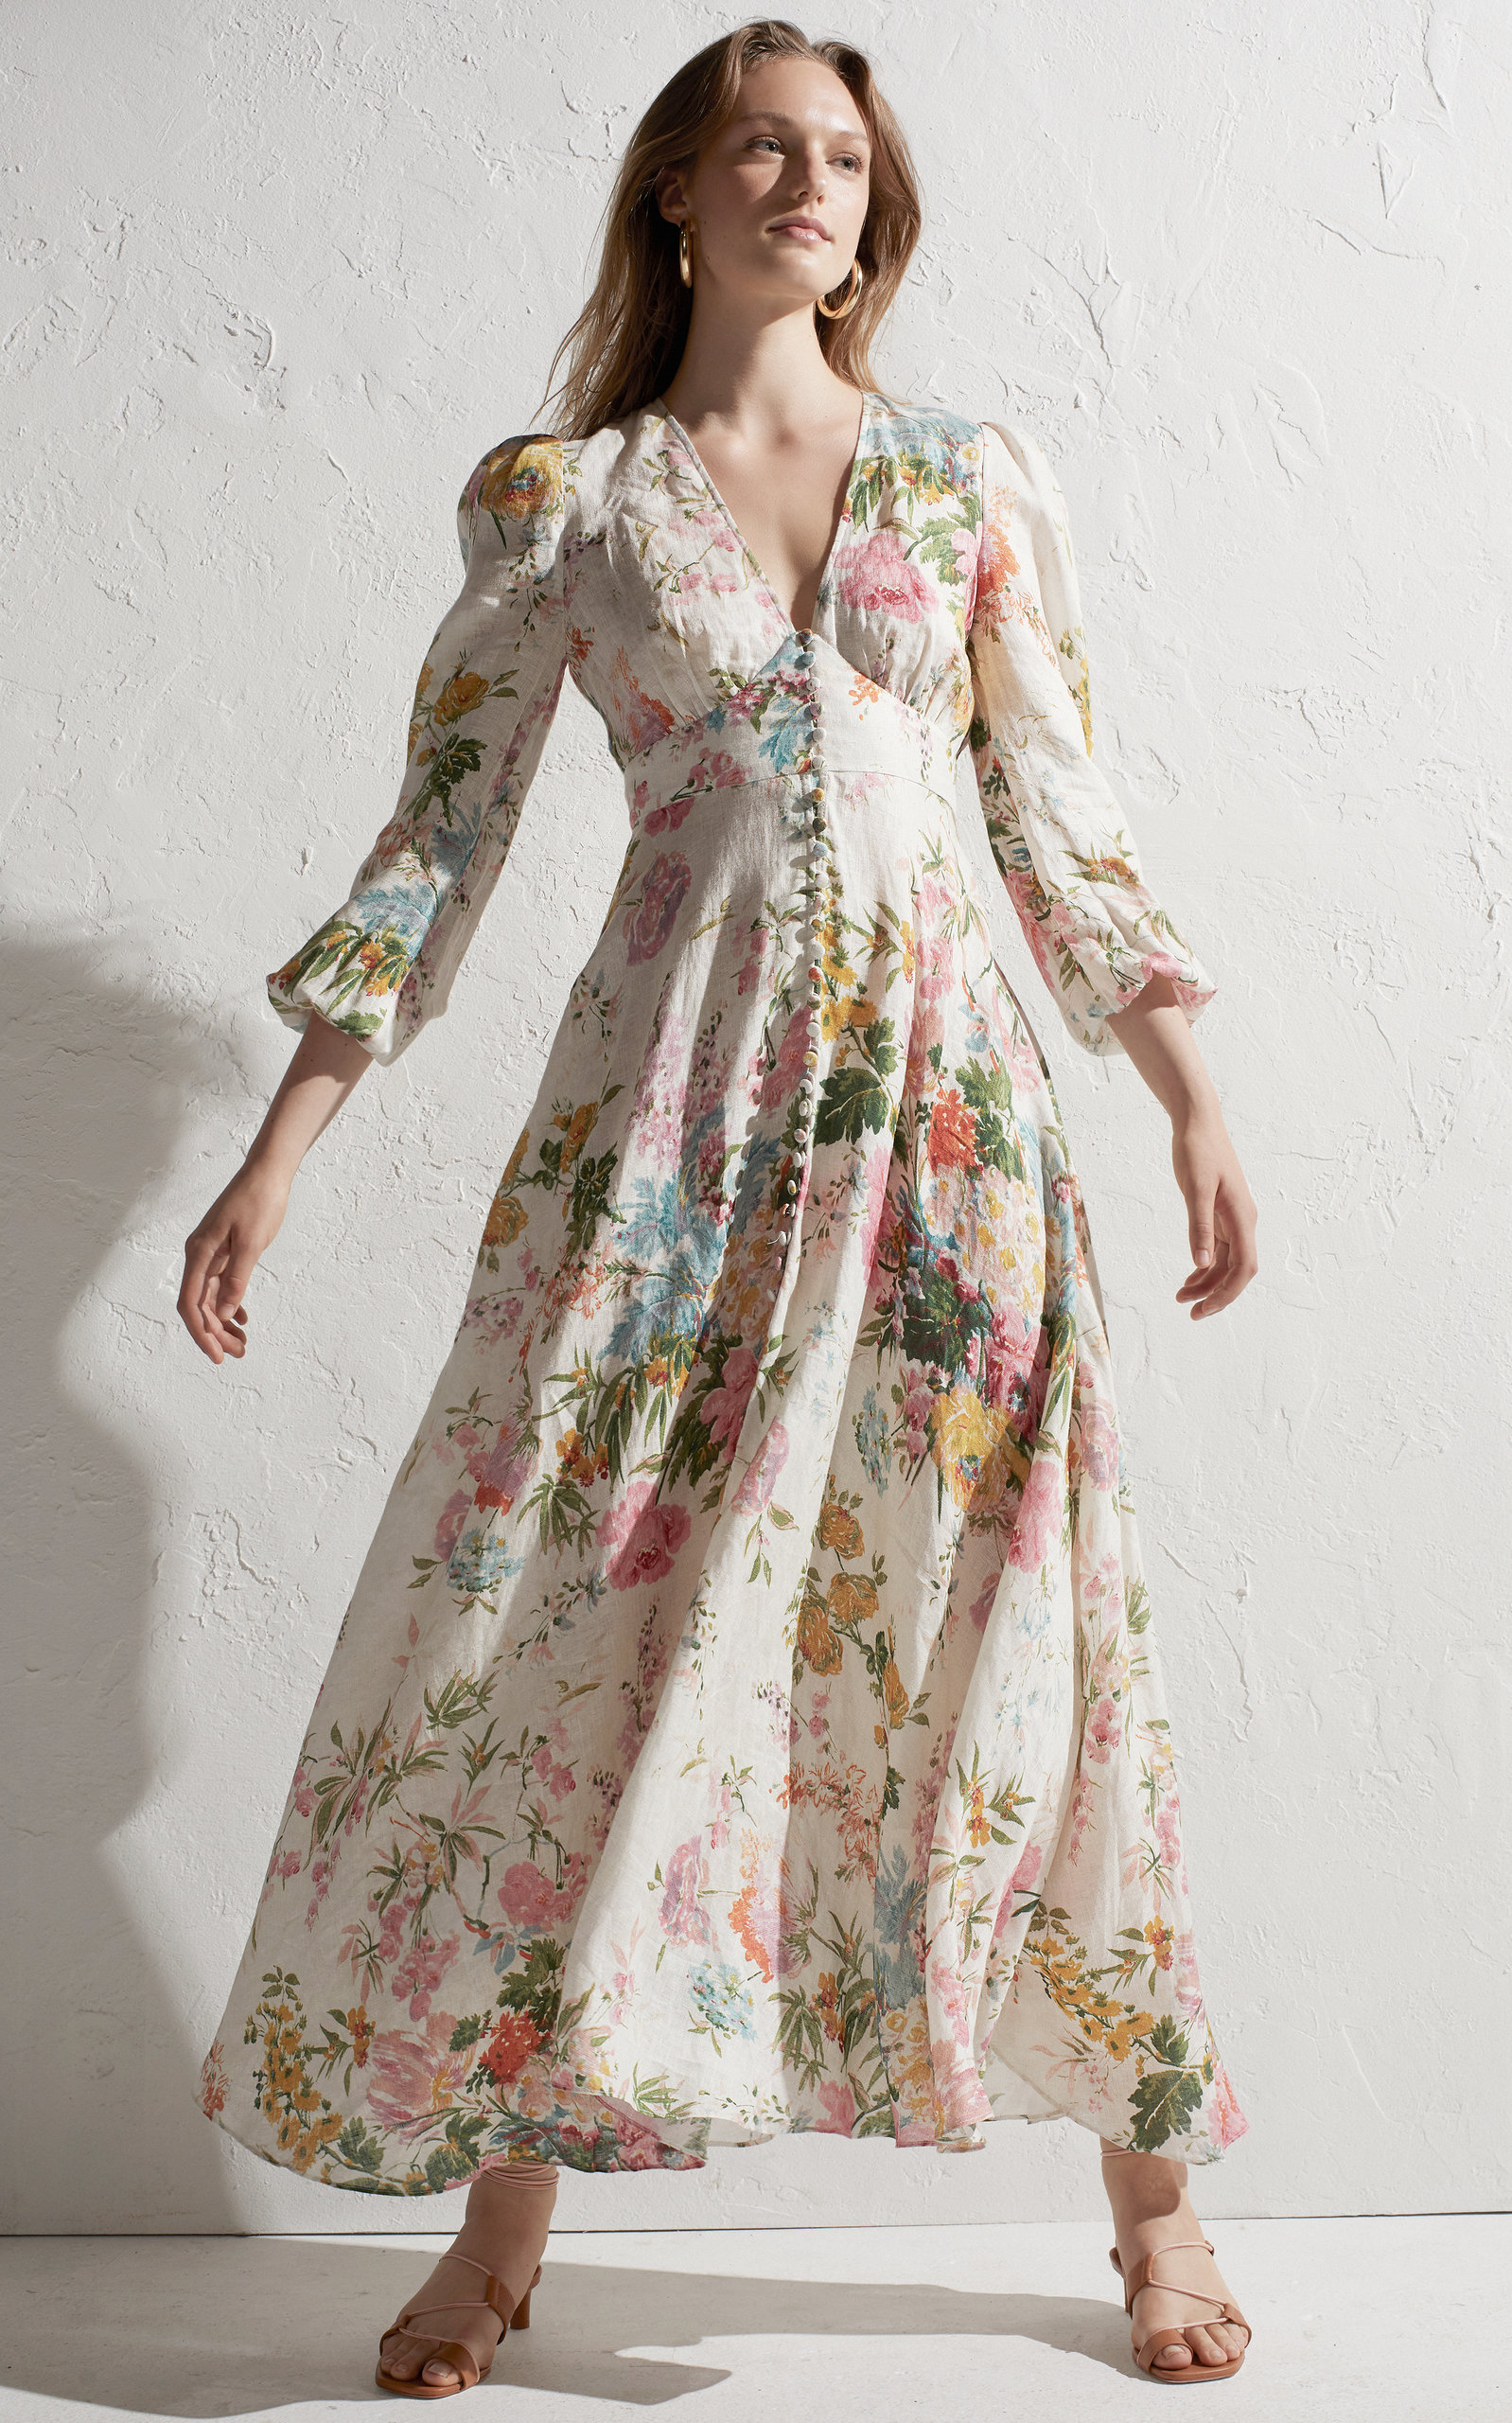 2869d47ec45 ZimmermannHeathers Floral Linen Maxi Dress. CLOSE. Loading. Loading.  Loading. Loading